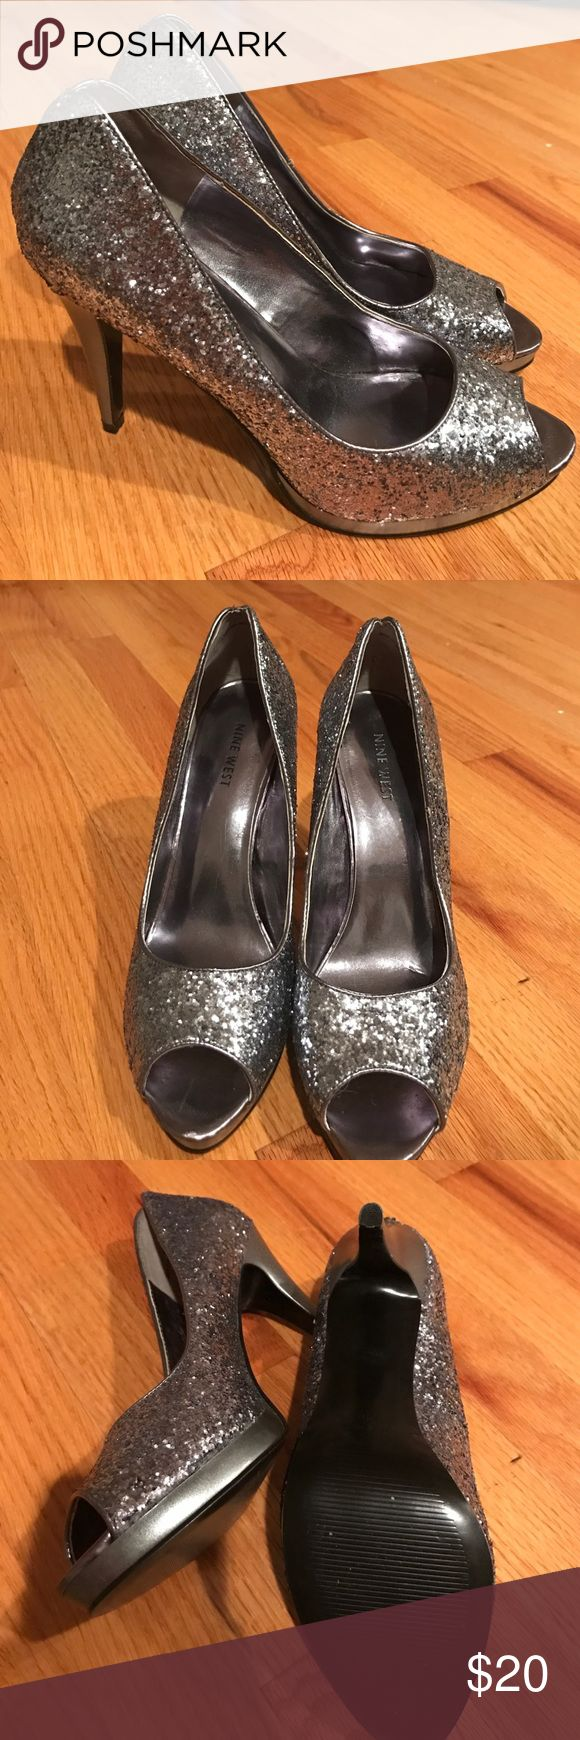 Nine West Glitter High Heel 8.5 Nine West Glitter High Heel 8.5. In excellent condition. Only worn once. Nine West Shoes Heels